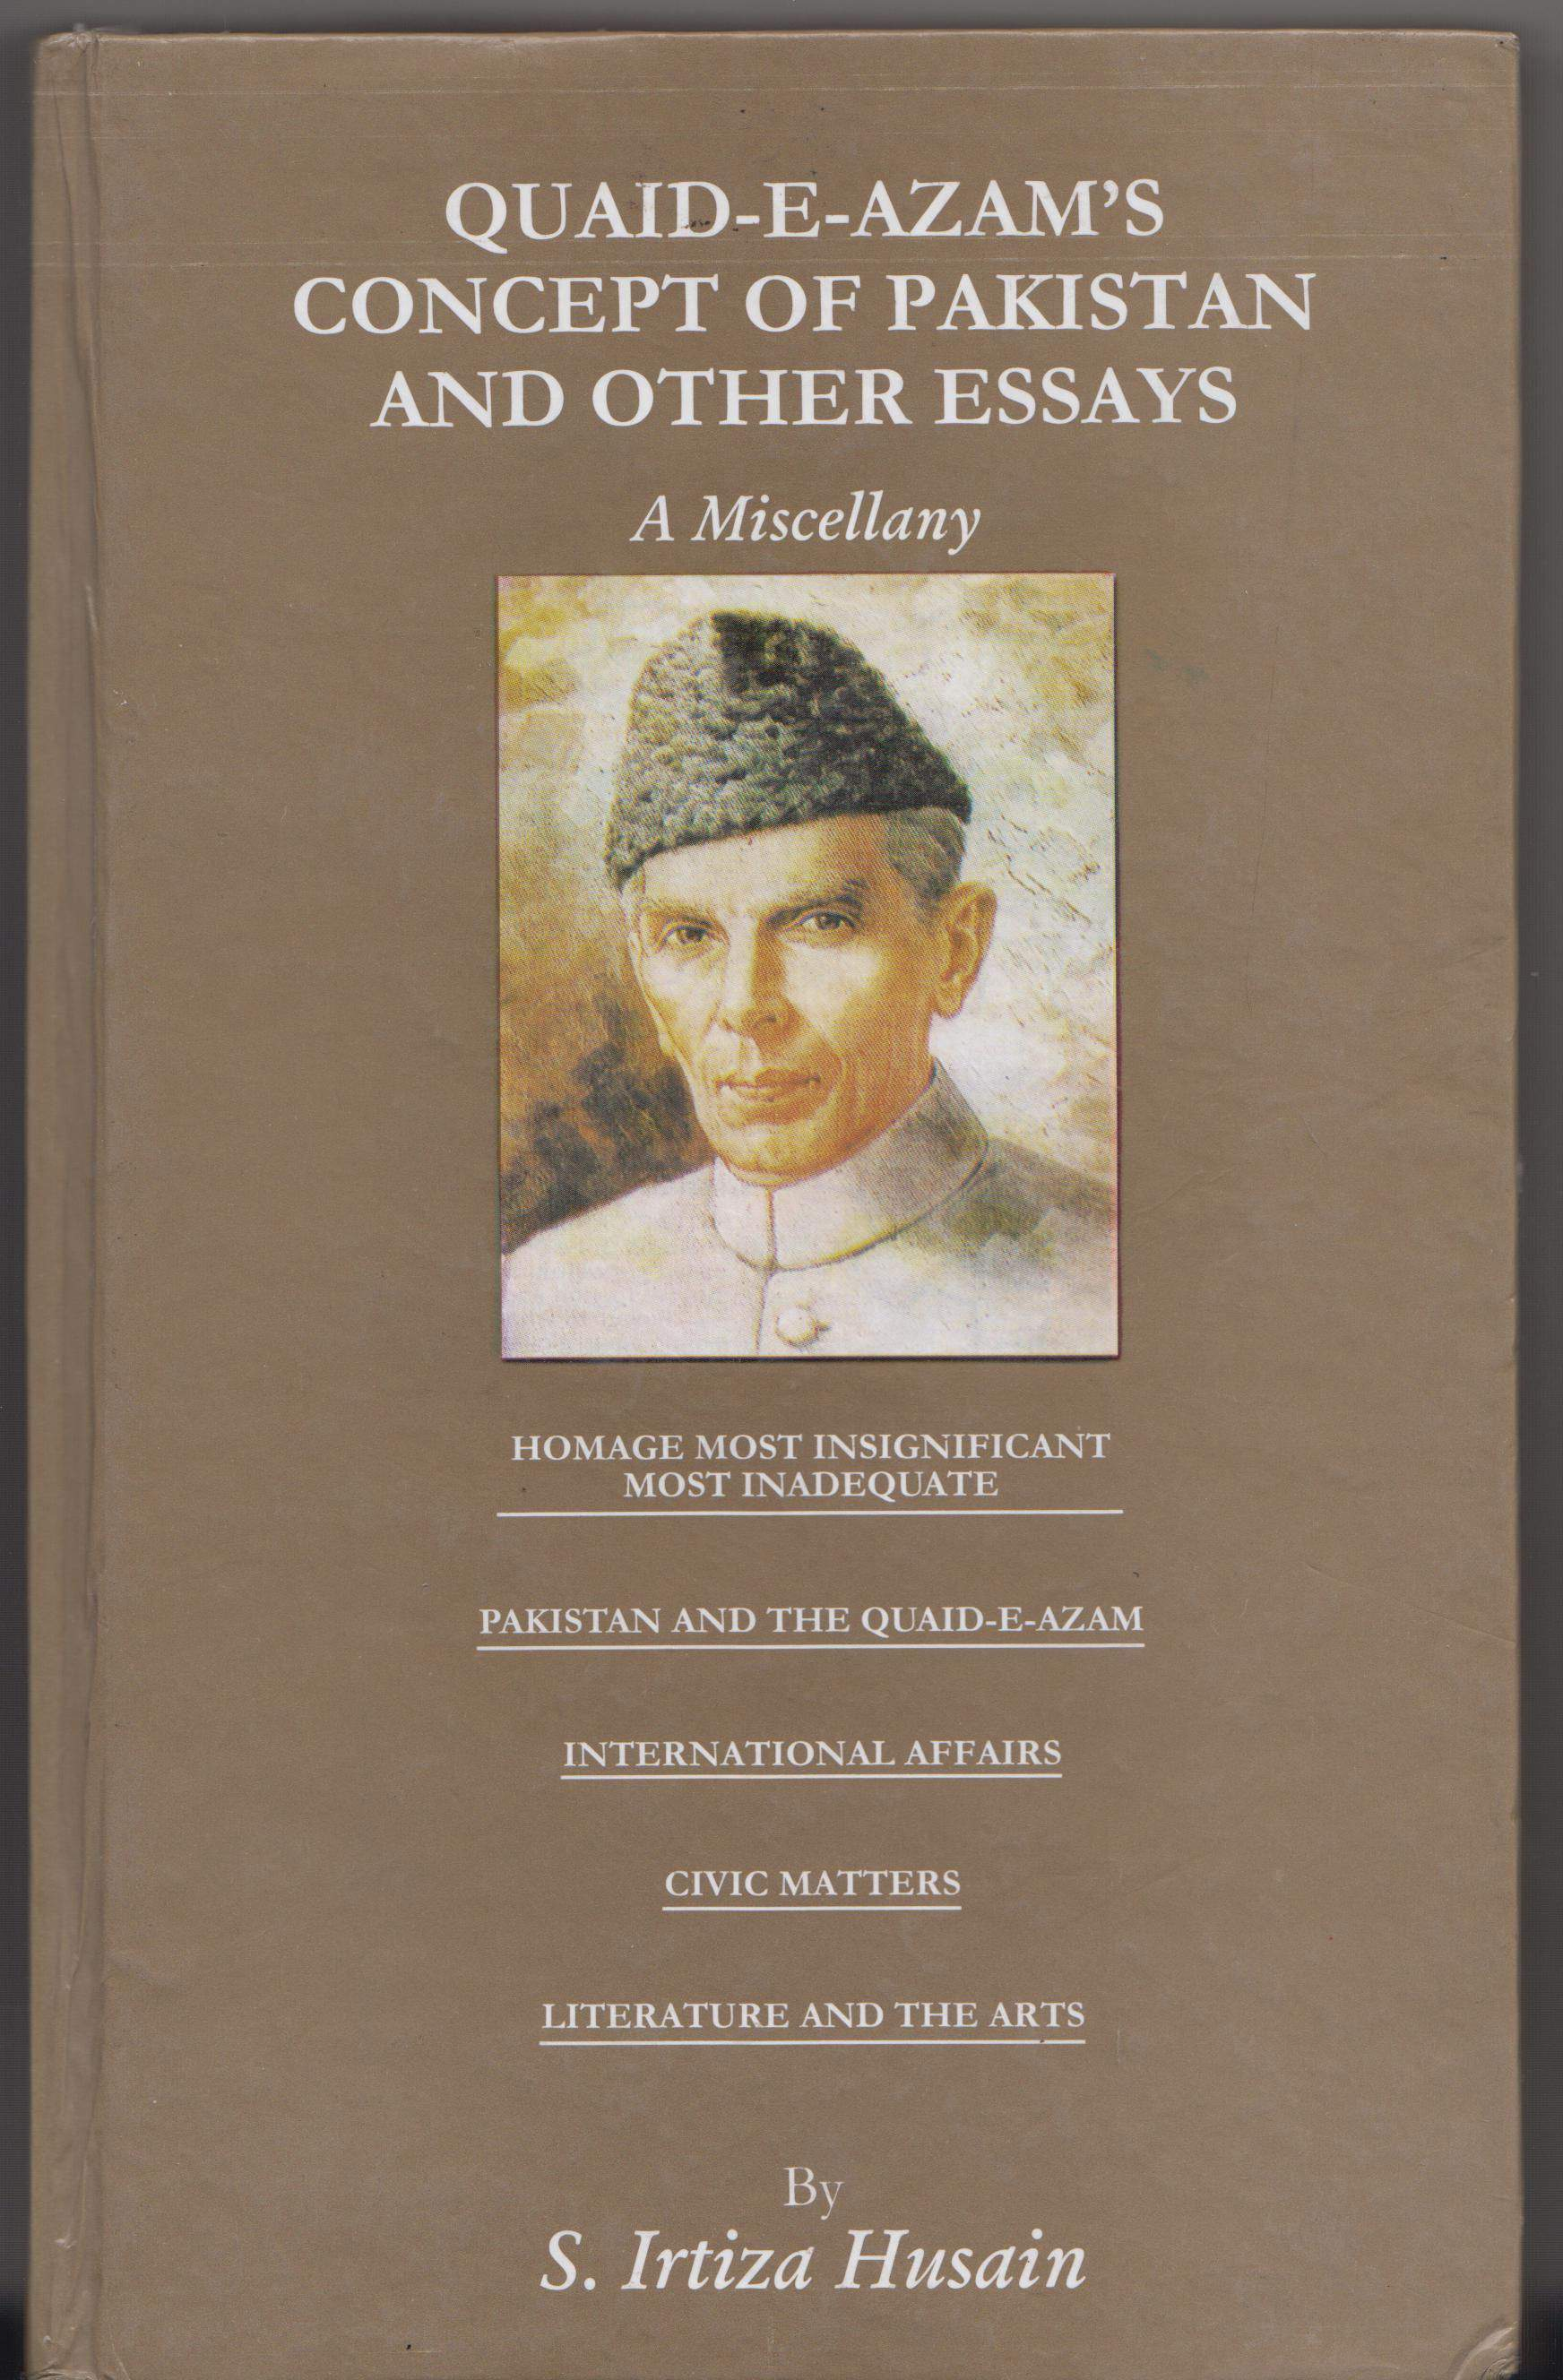 QuaideAzams Concept of Pakistan nad Other Essays